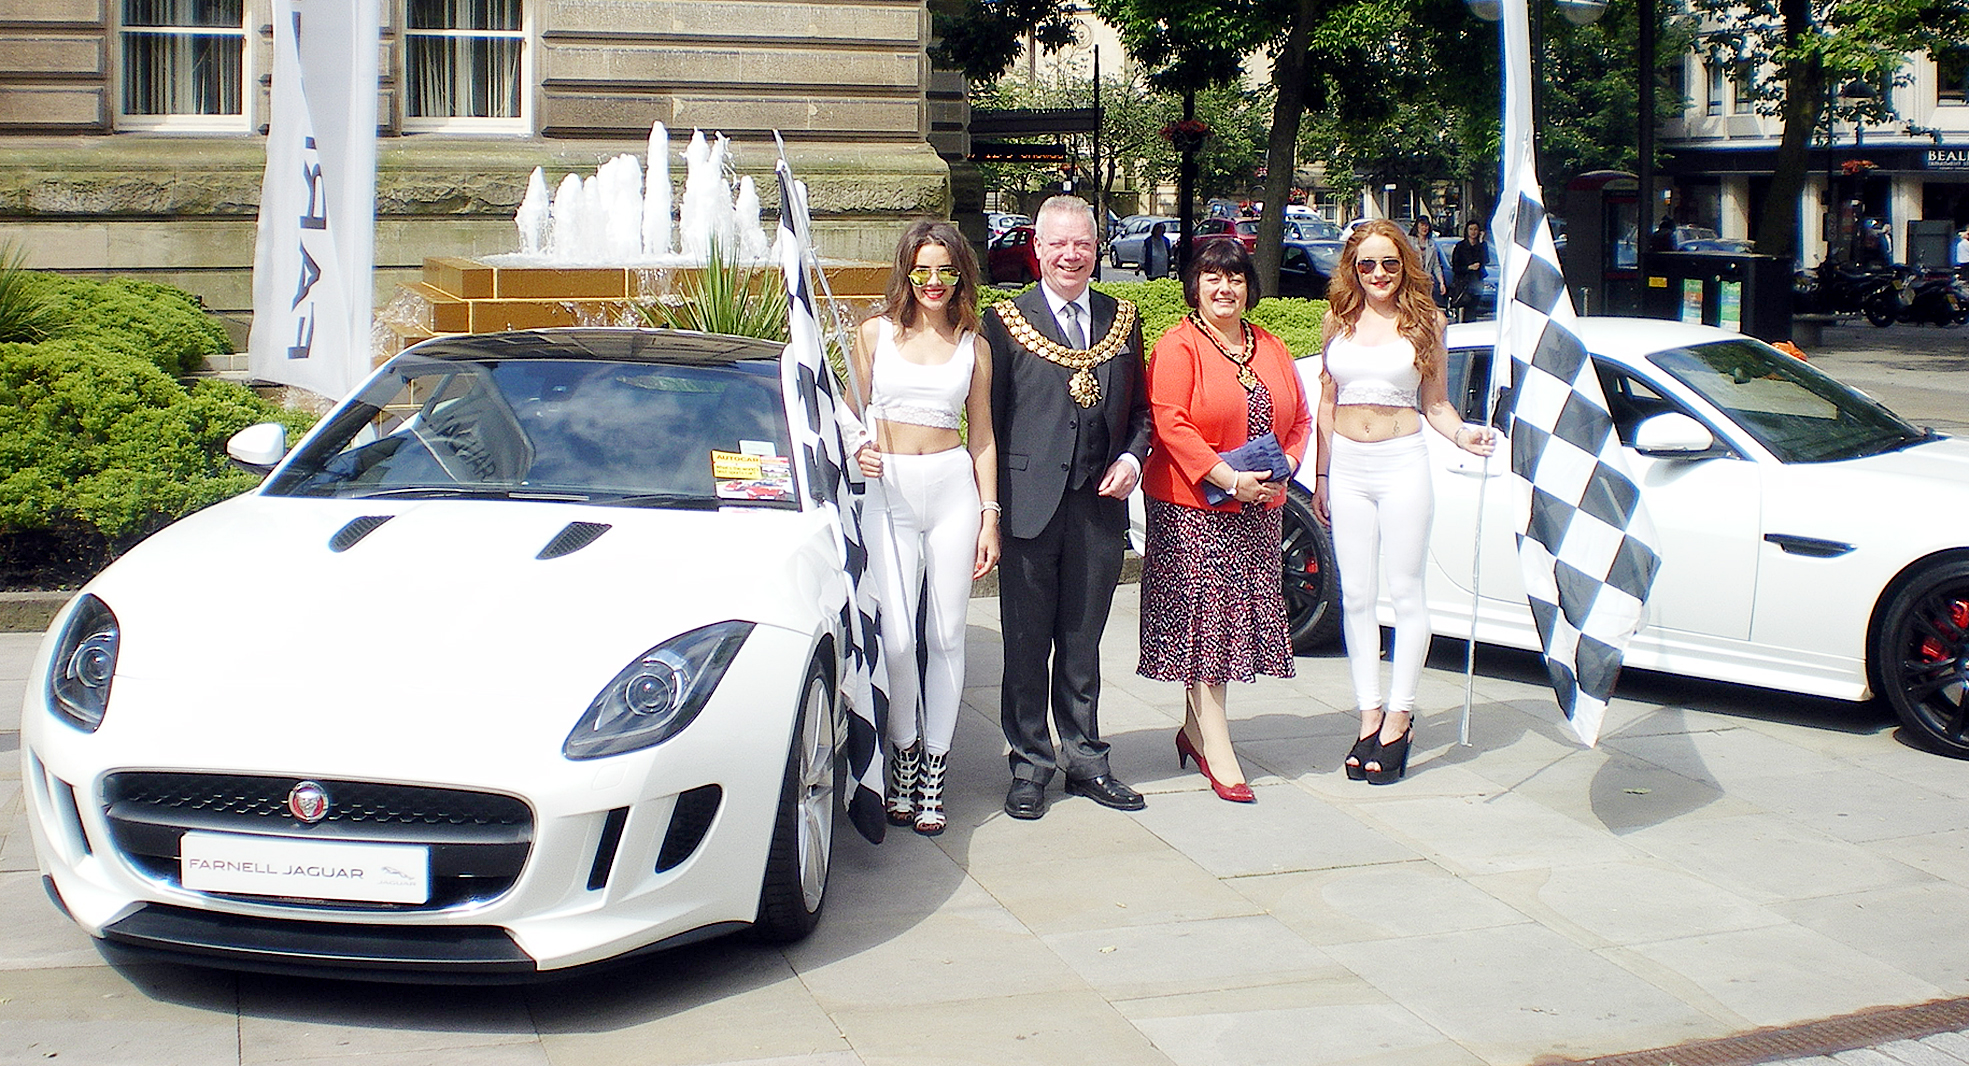 The Mayor and Mayoress of Bolton, Cllr Martin Donaghy and Gay Wharton, in Victoria Square for the motorsport festival